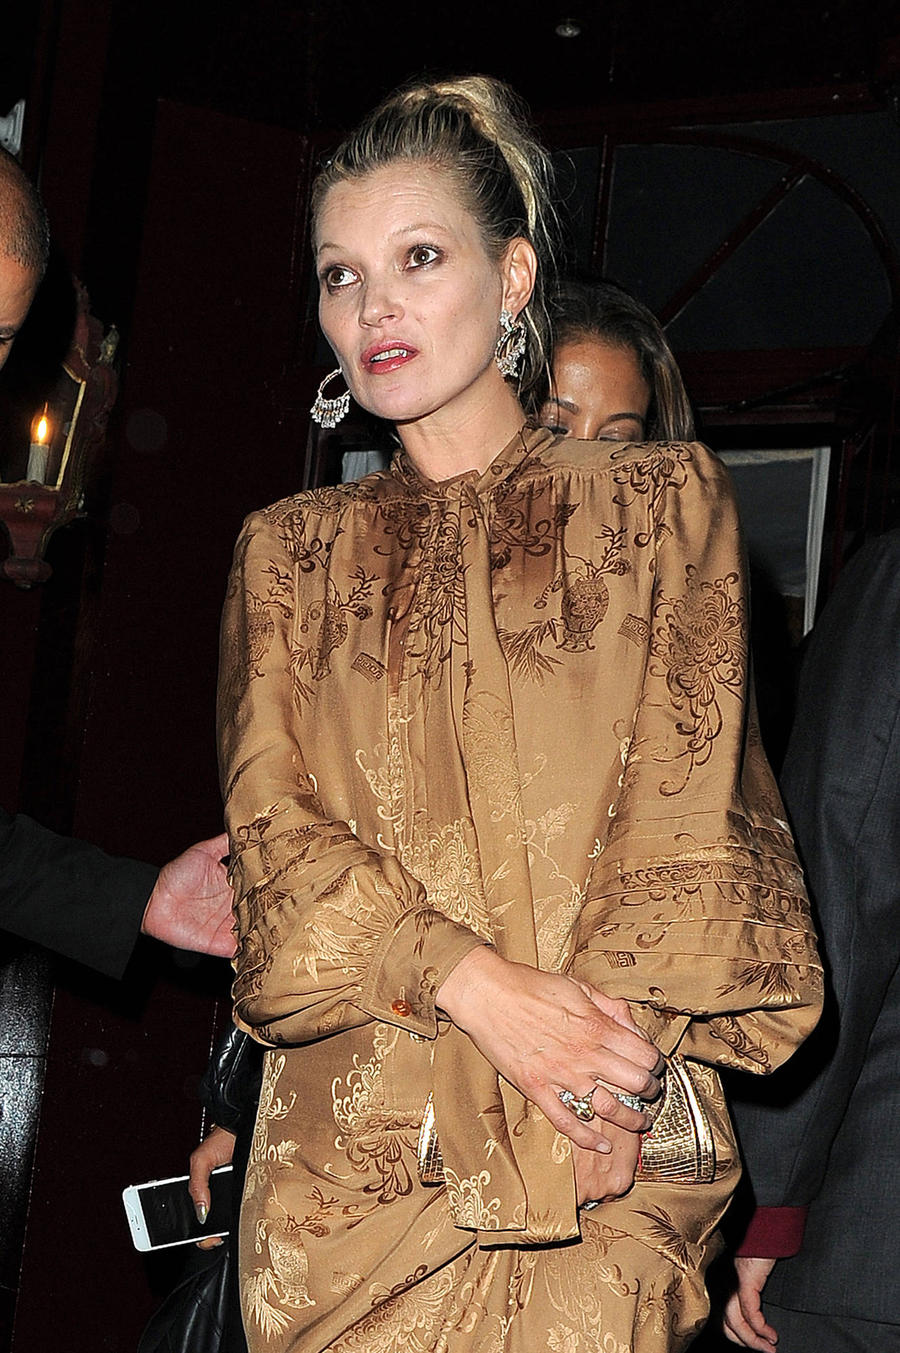 Private Kate Moss Photos Leaked After Sister's Site Is Hacked